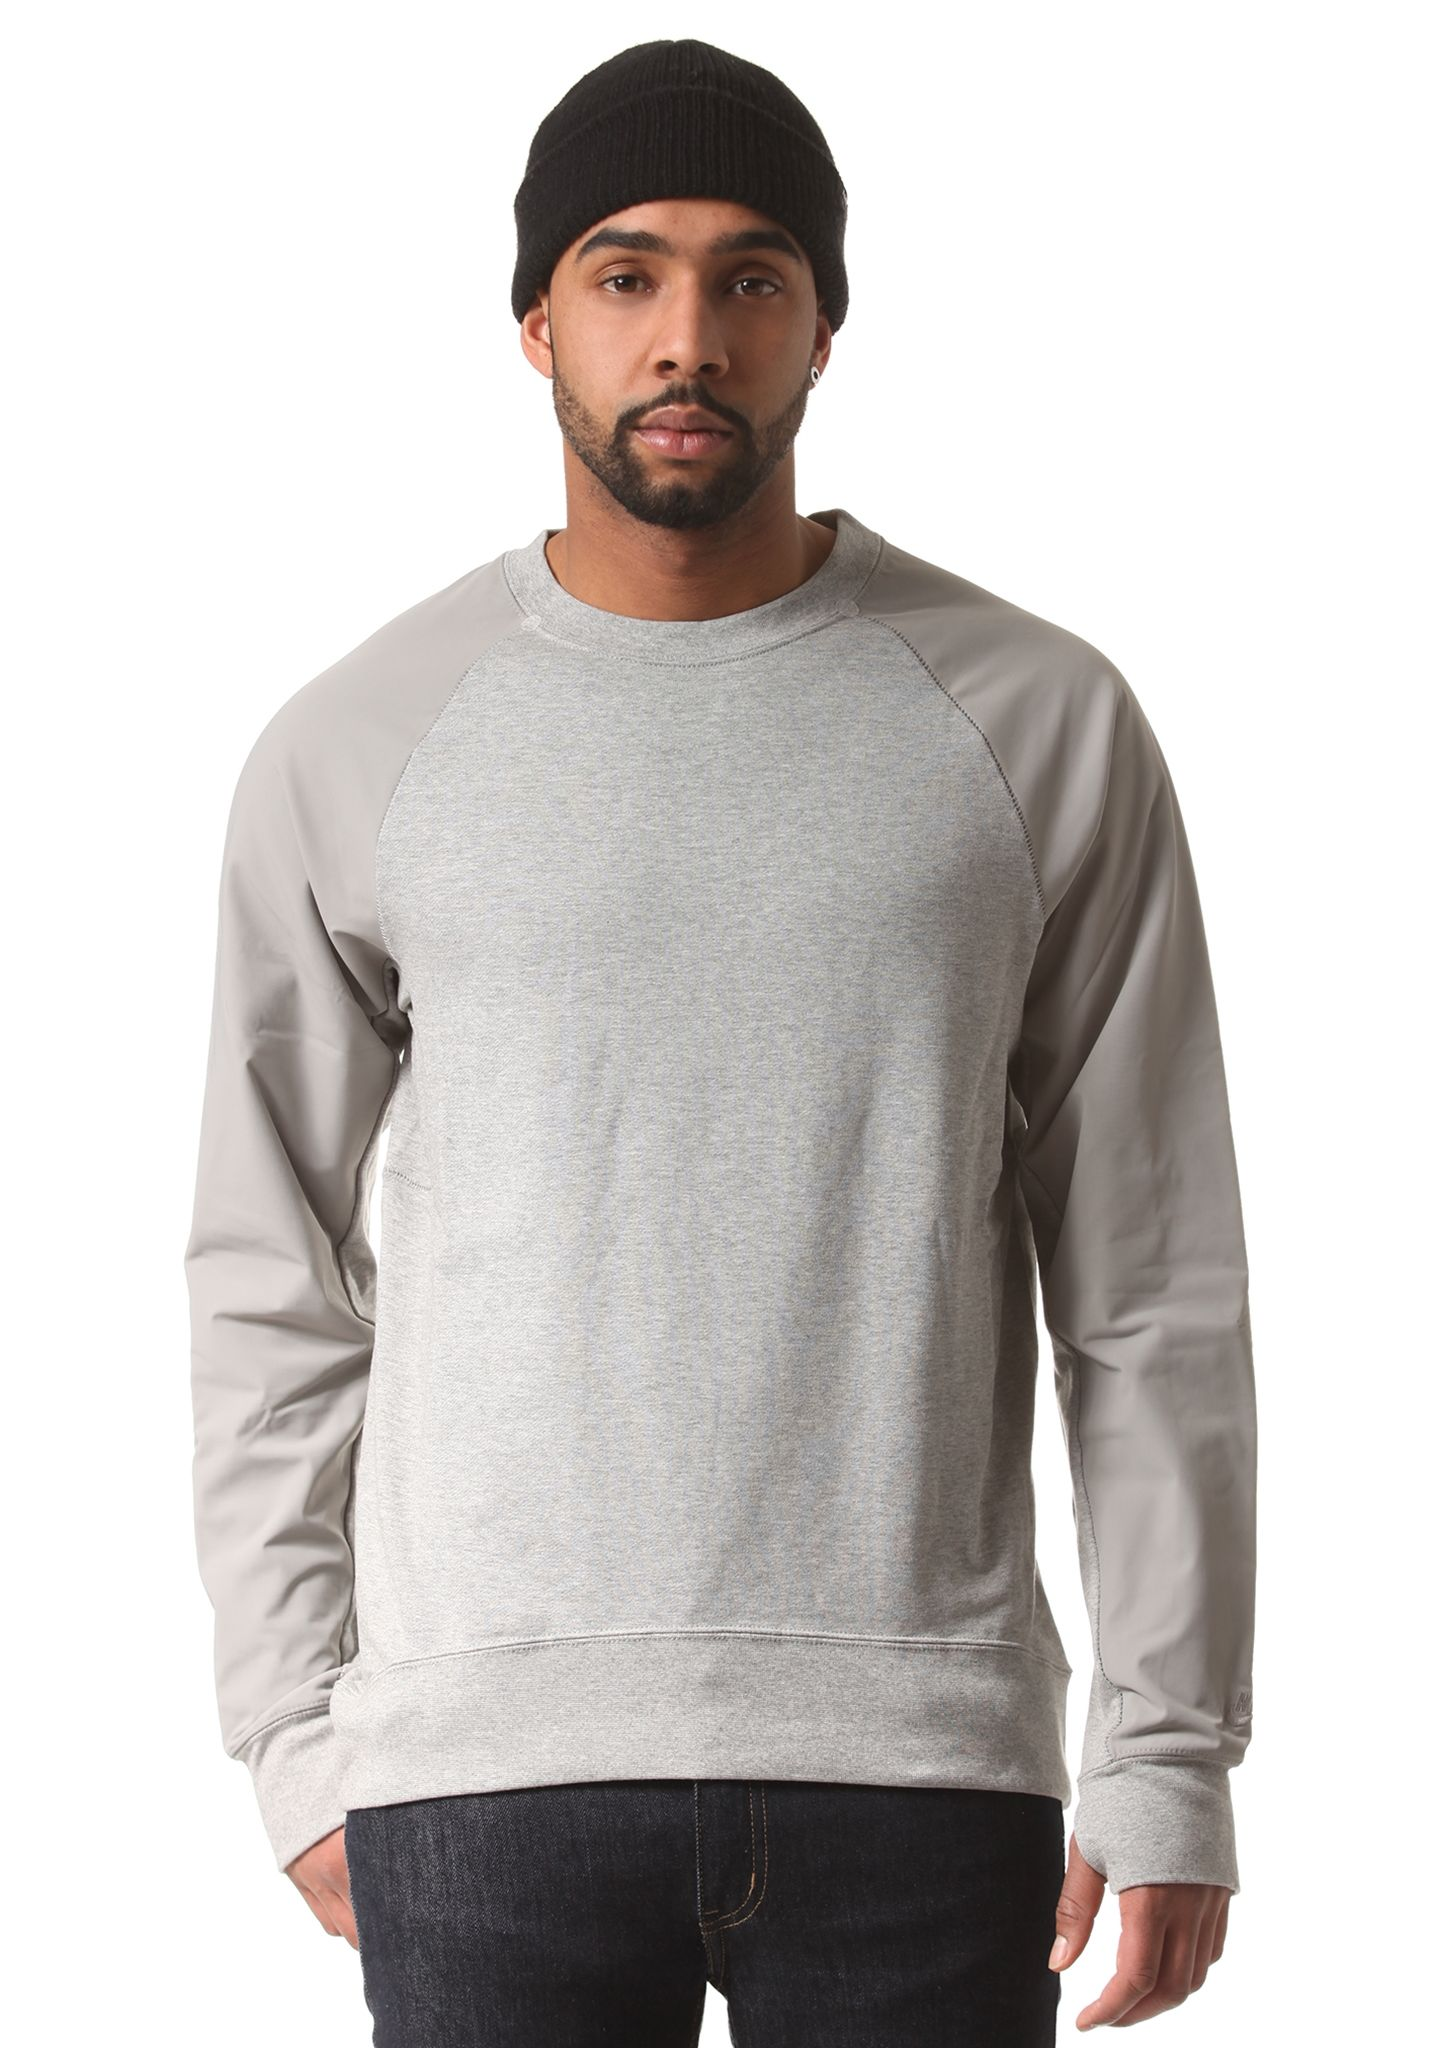 Sweat Pour Overlay Gris Planet Everett Nike Sb Sports Crew Homme 2DH9IYWE